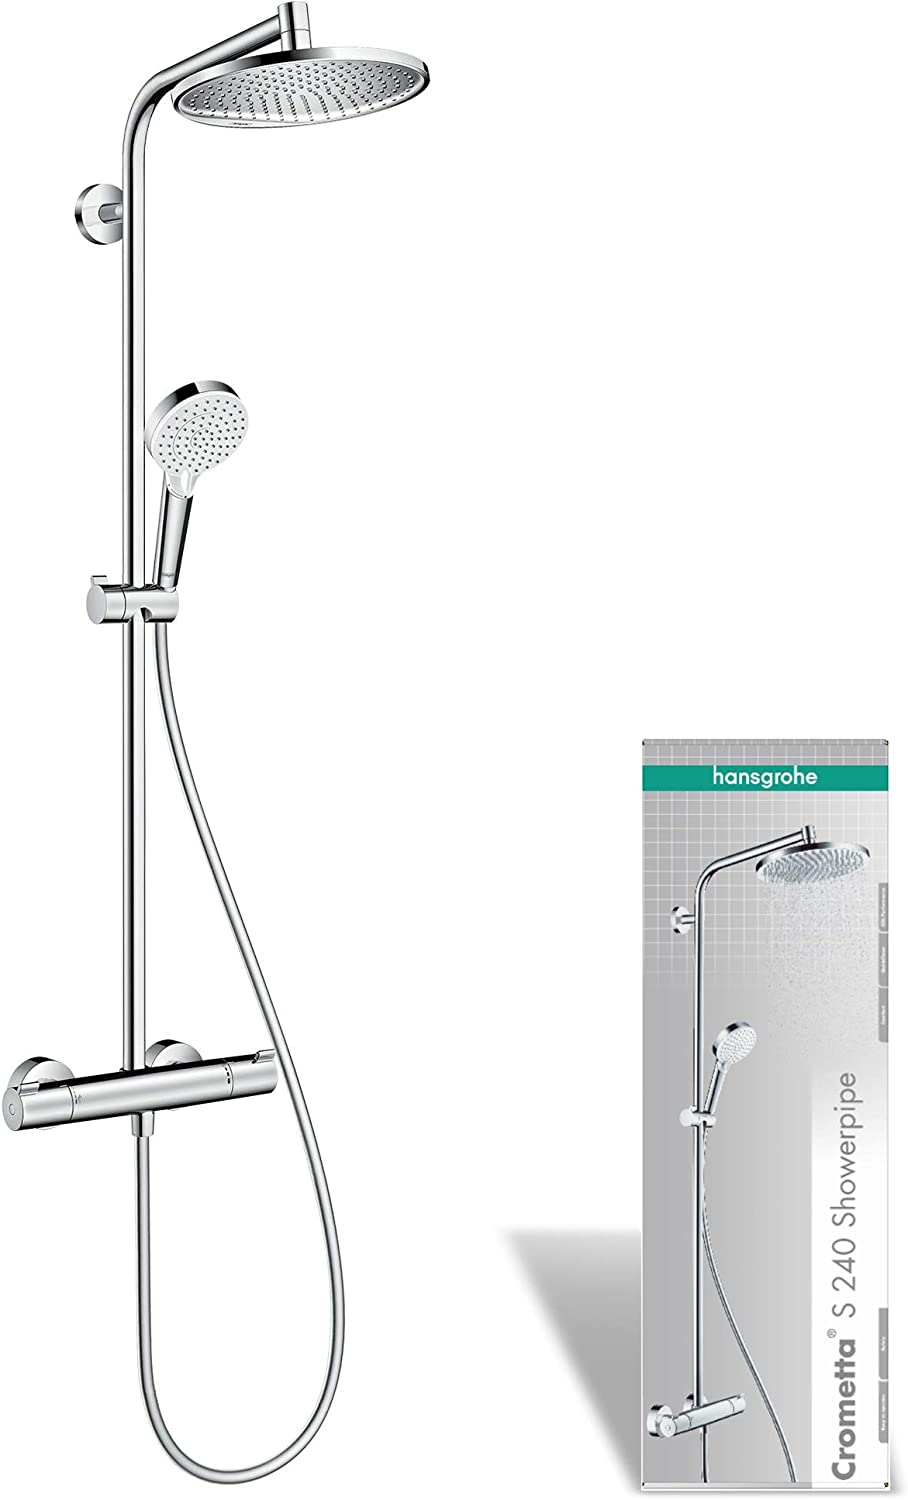 hansgrohe Crometta S Showerpipe 240 1jet with thermostatic shower mixer